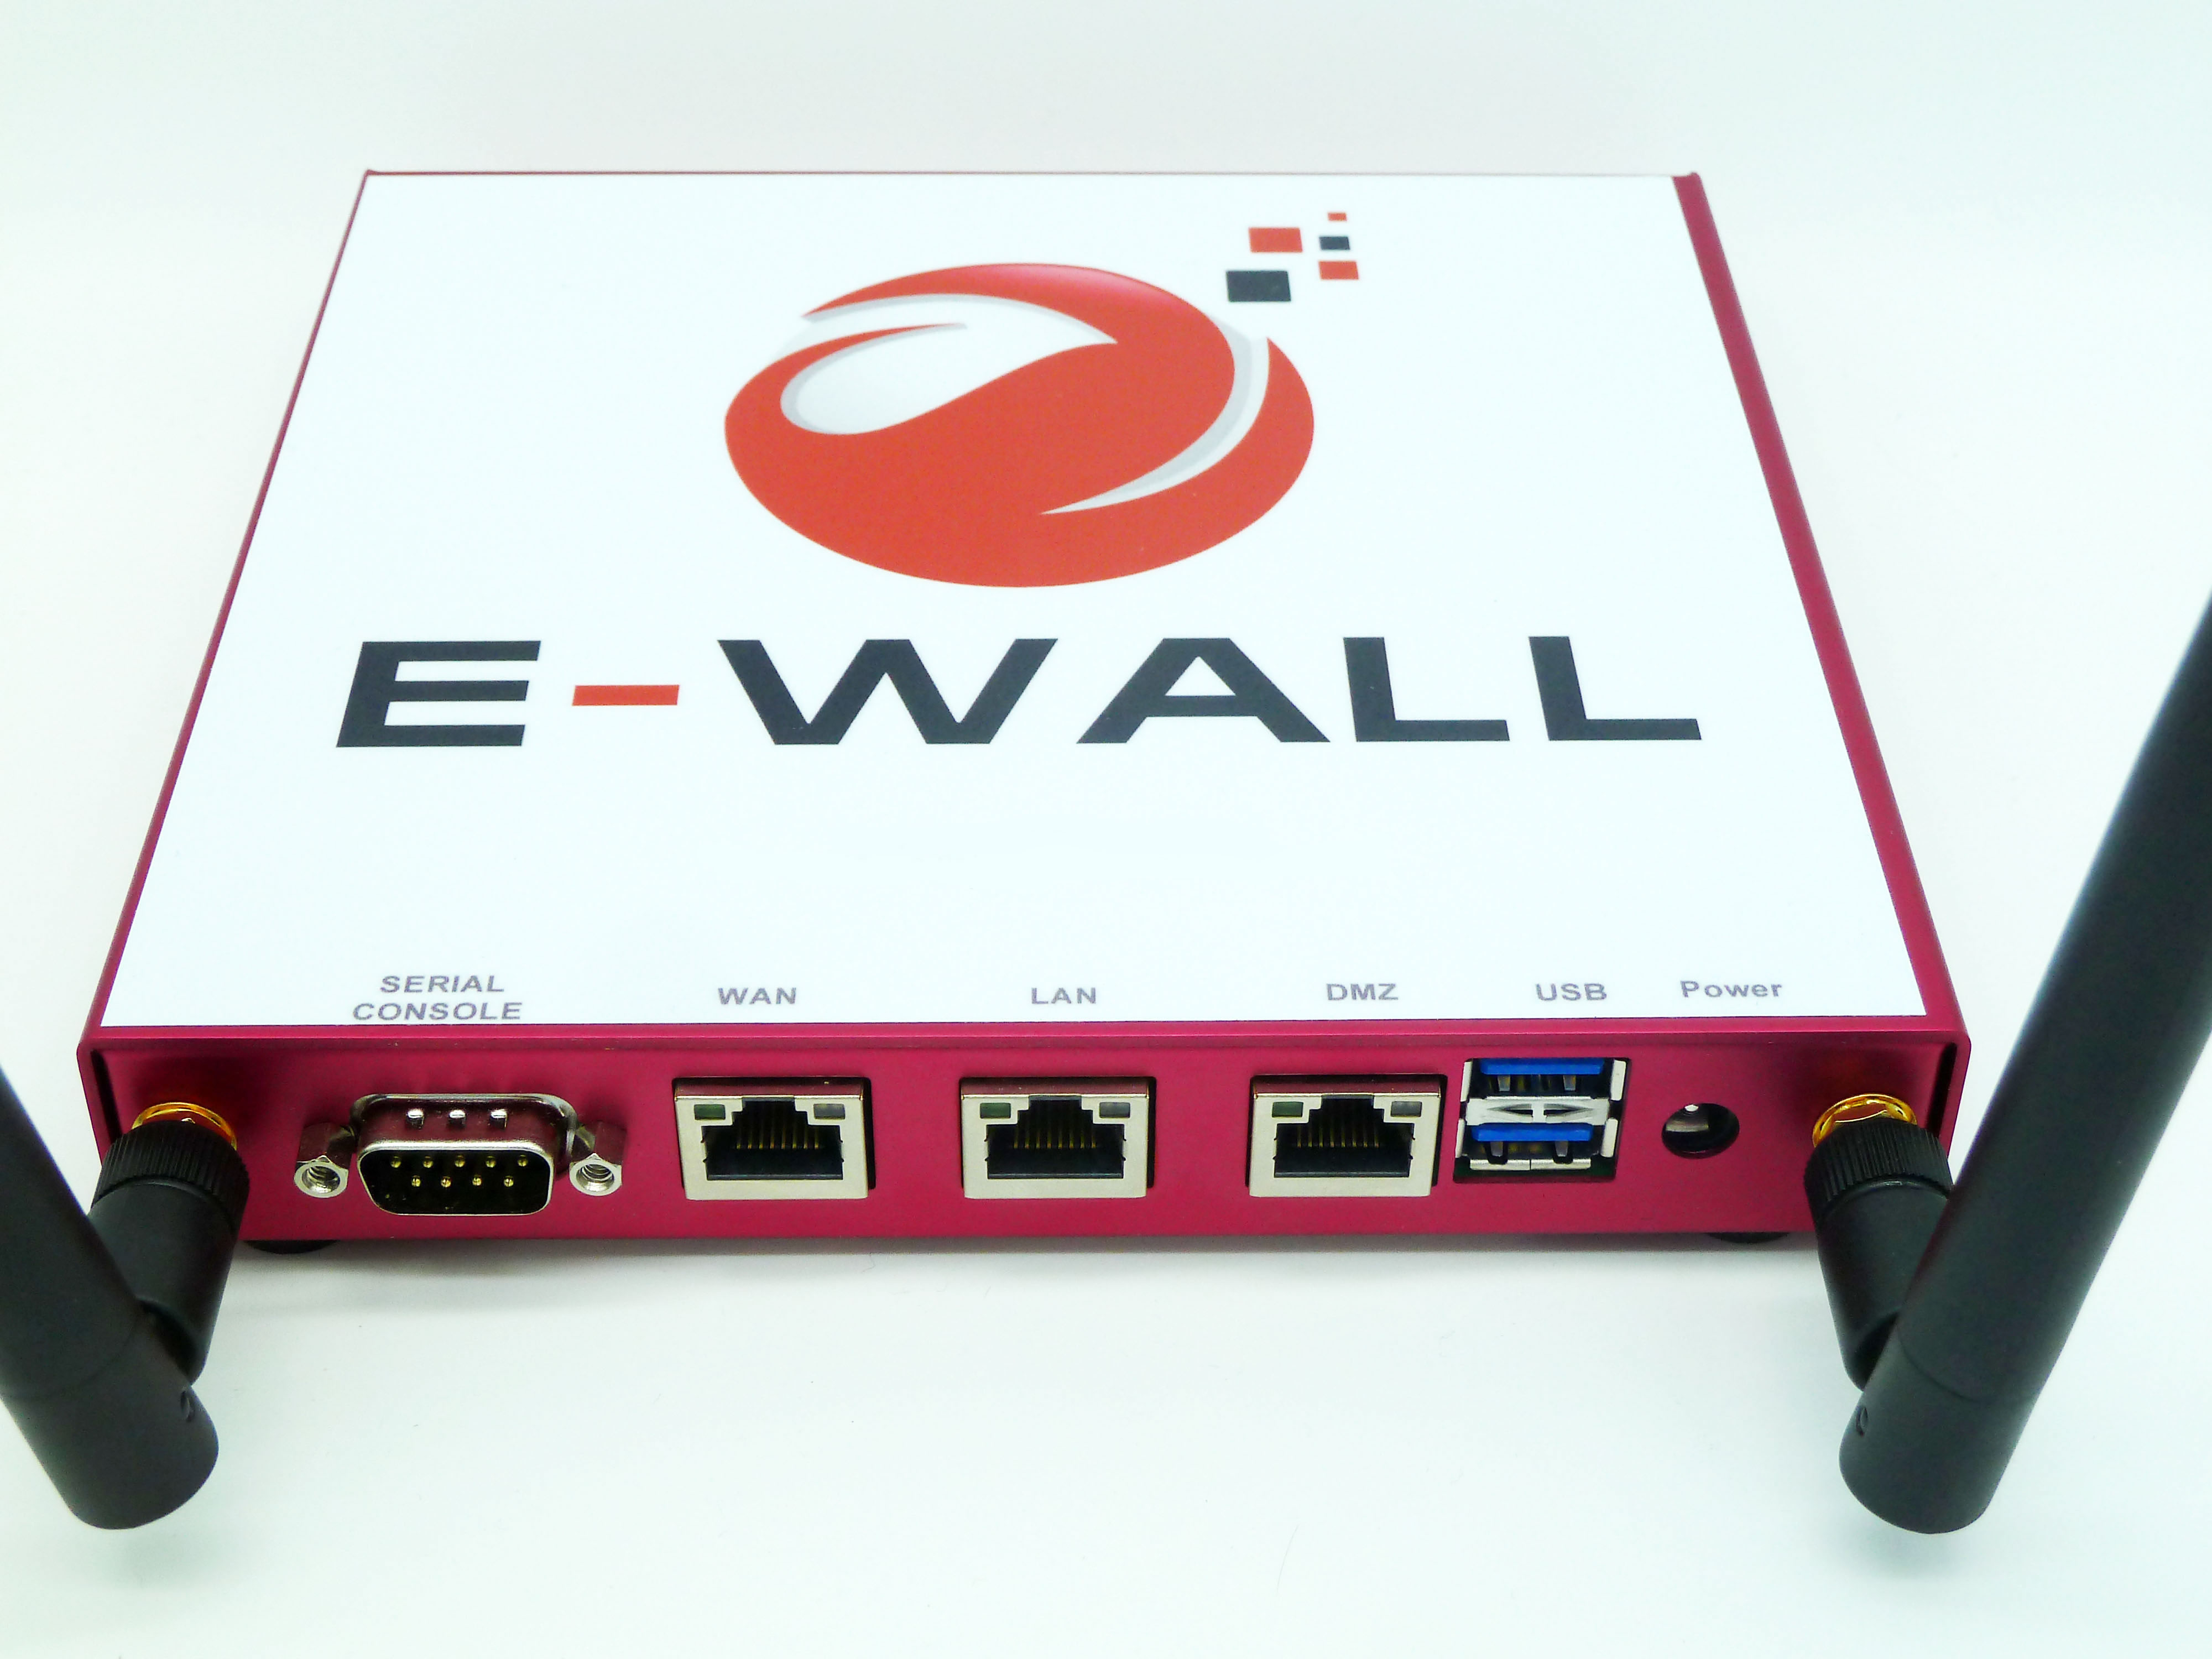 Firewall Open Source with WIFI b/g/n card